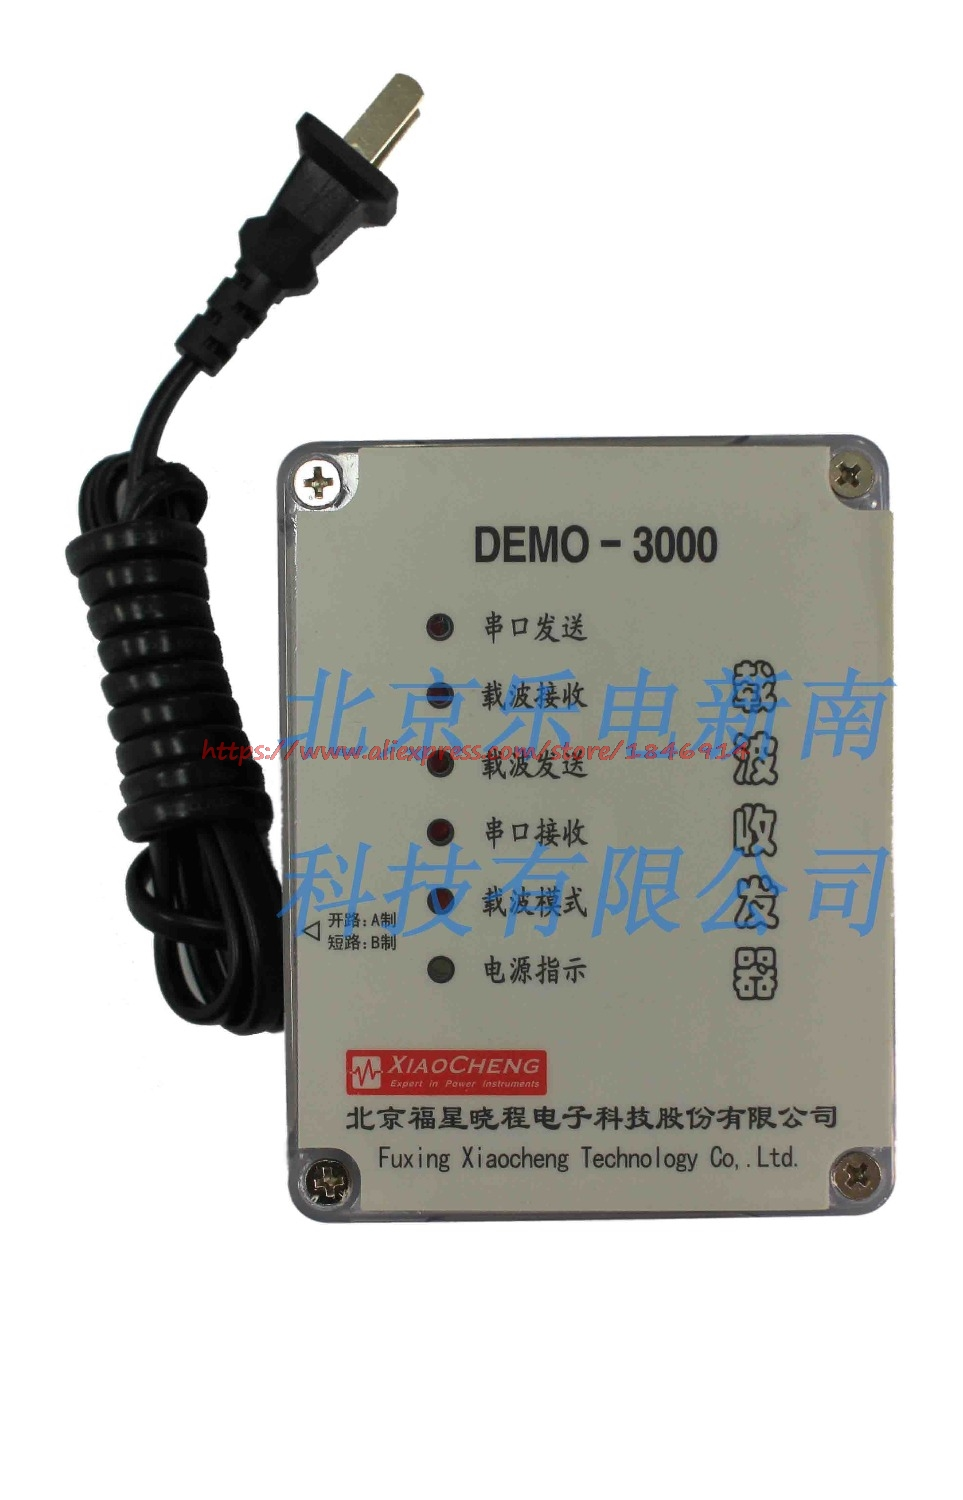 PL3201 development board Power line carrier module Carrier communication serial port Remote meter readingPL3201 development board Power line carrier module Carrier communication serial port Remote meter reading